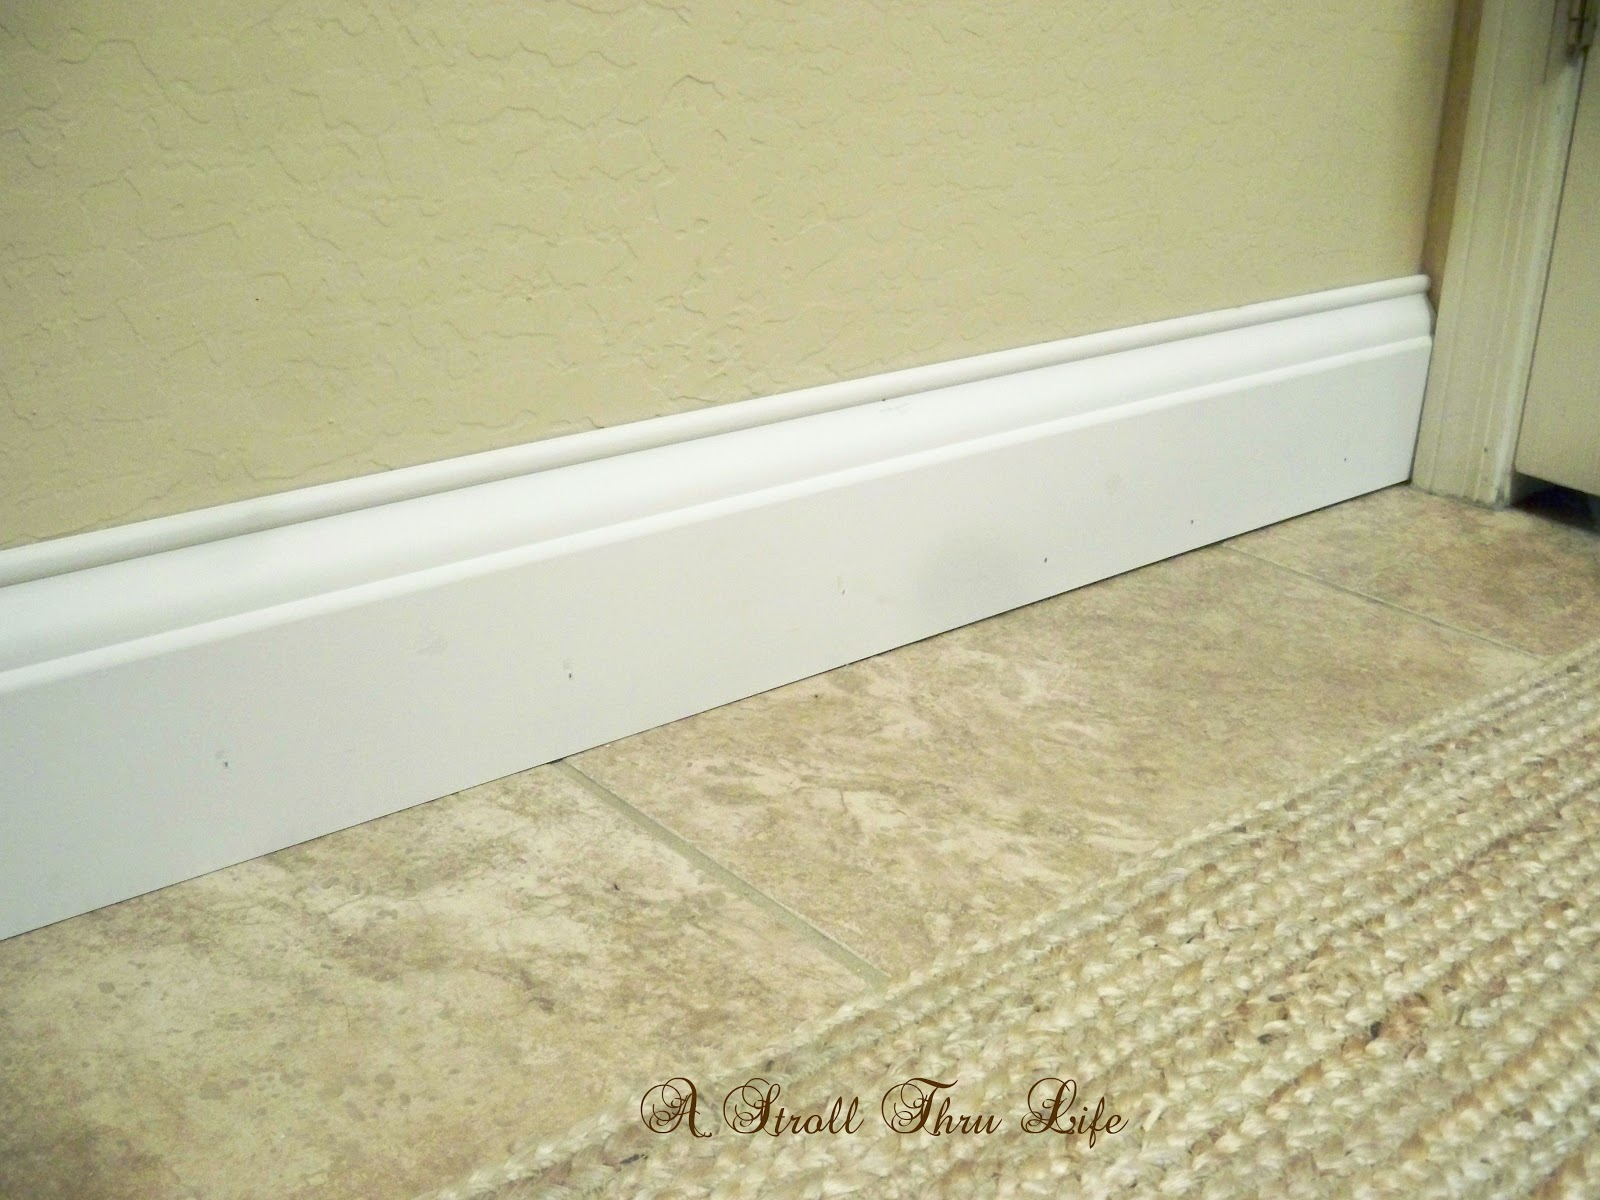 New Bathroom Baseboard Ideas Bathroom Ideas Designs